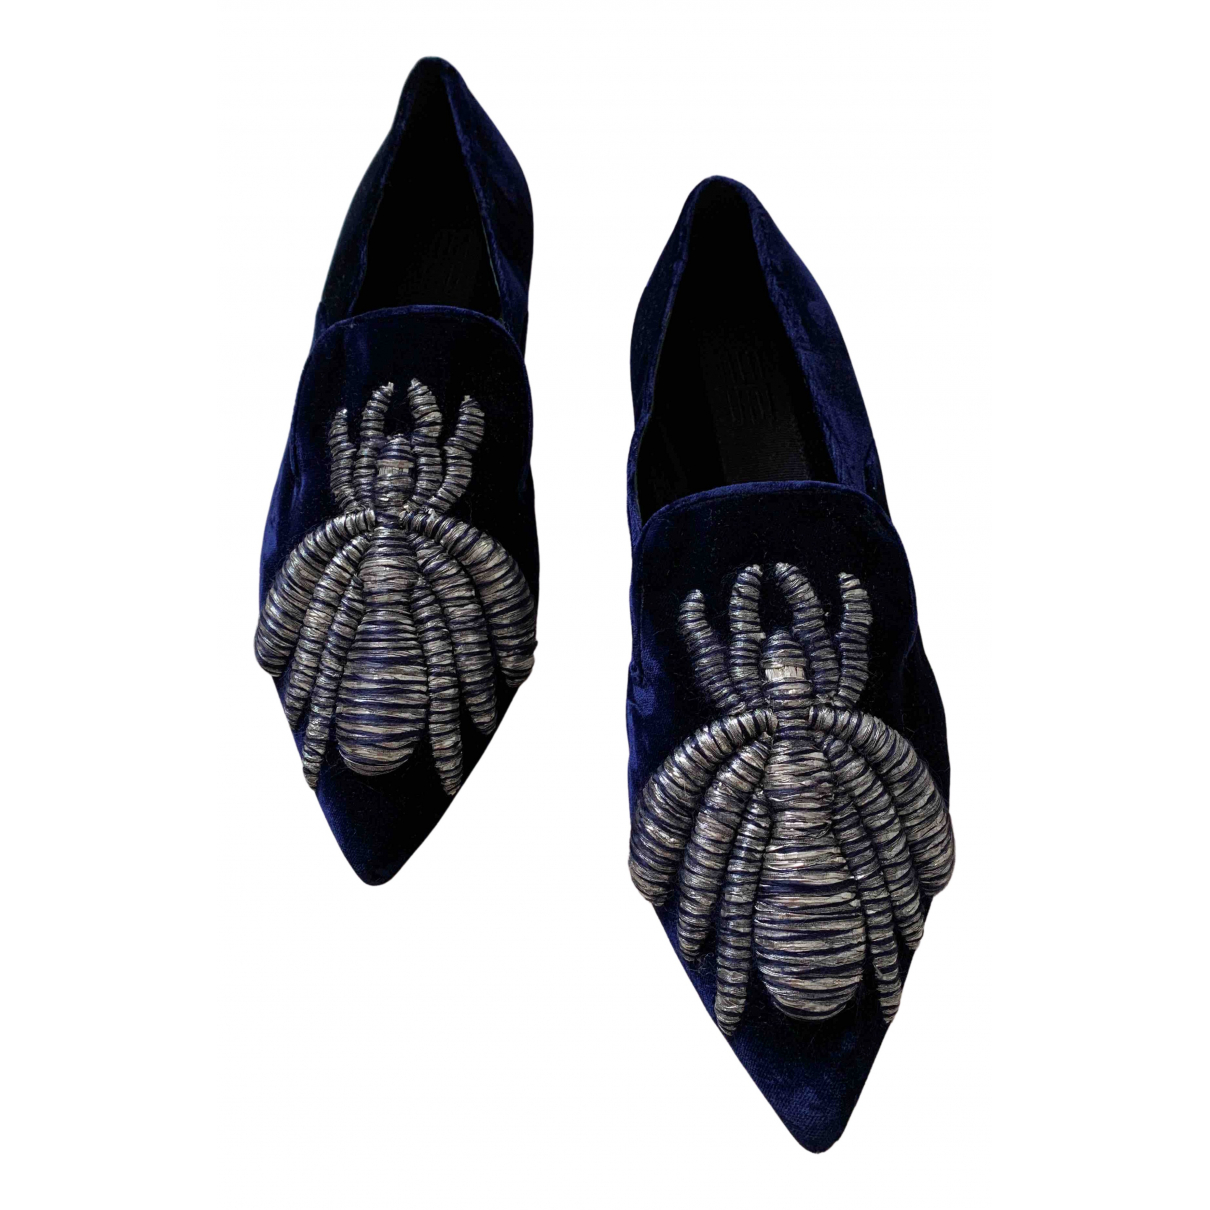 Sanayi 313 N Blue Velvet Flats for Women 37 EU